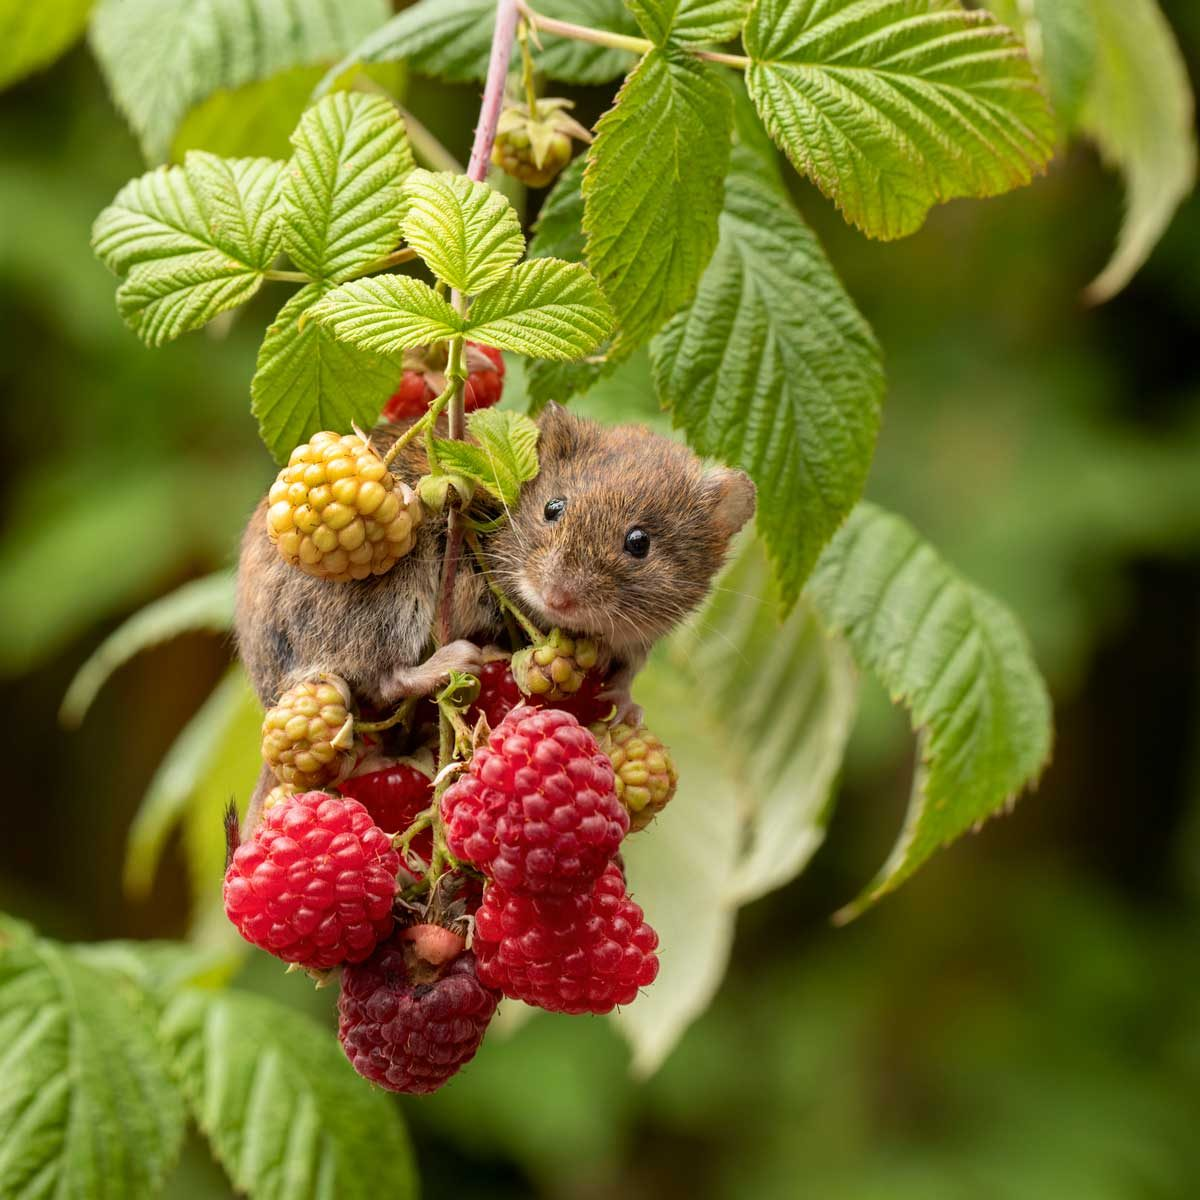 Rodent on a raspberry